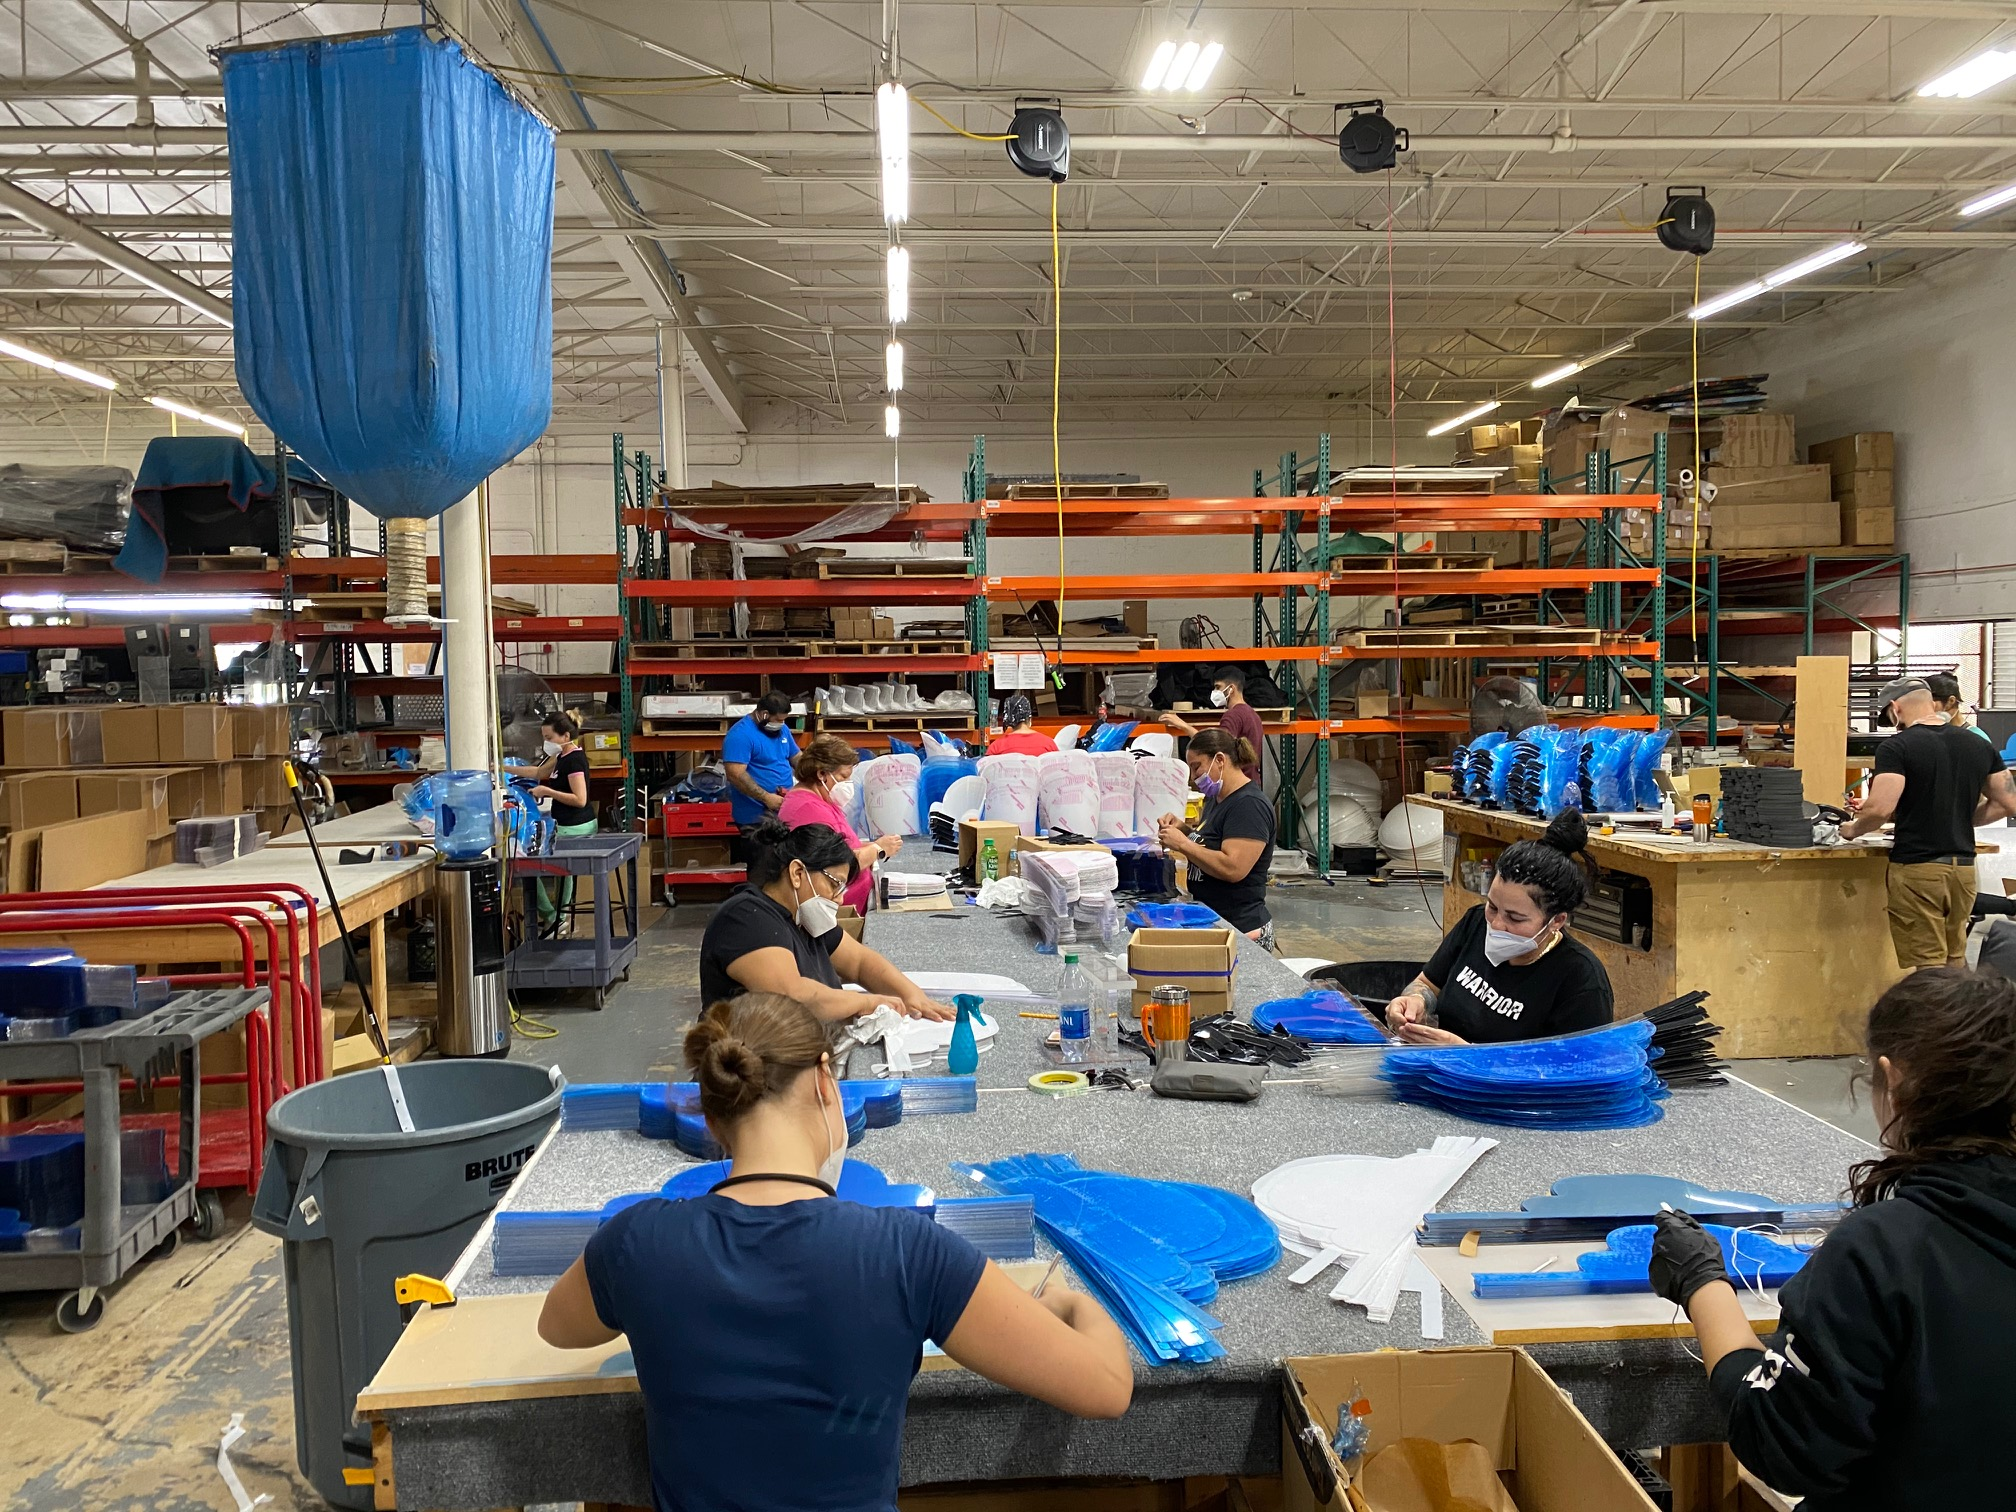 Wide-view of a warehouse of workers producing plastic face shields